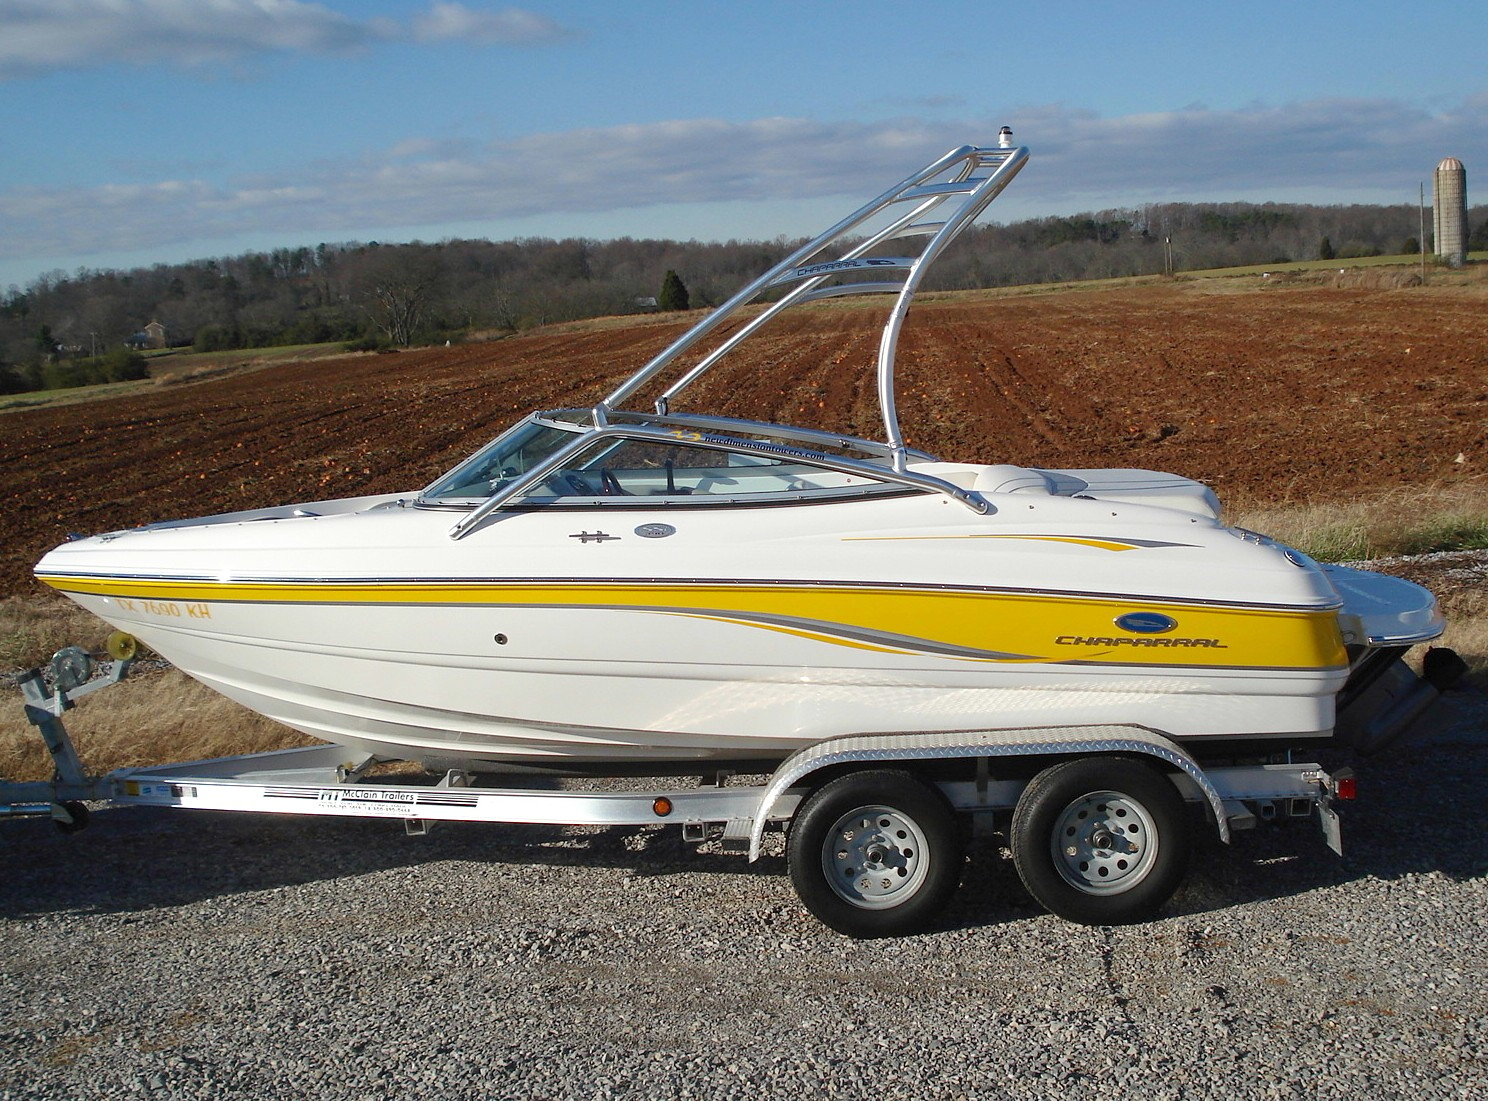 main image of 05 chaparral 190 ssi wakeboard boat with new dimension tower rack